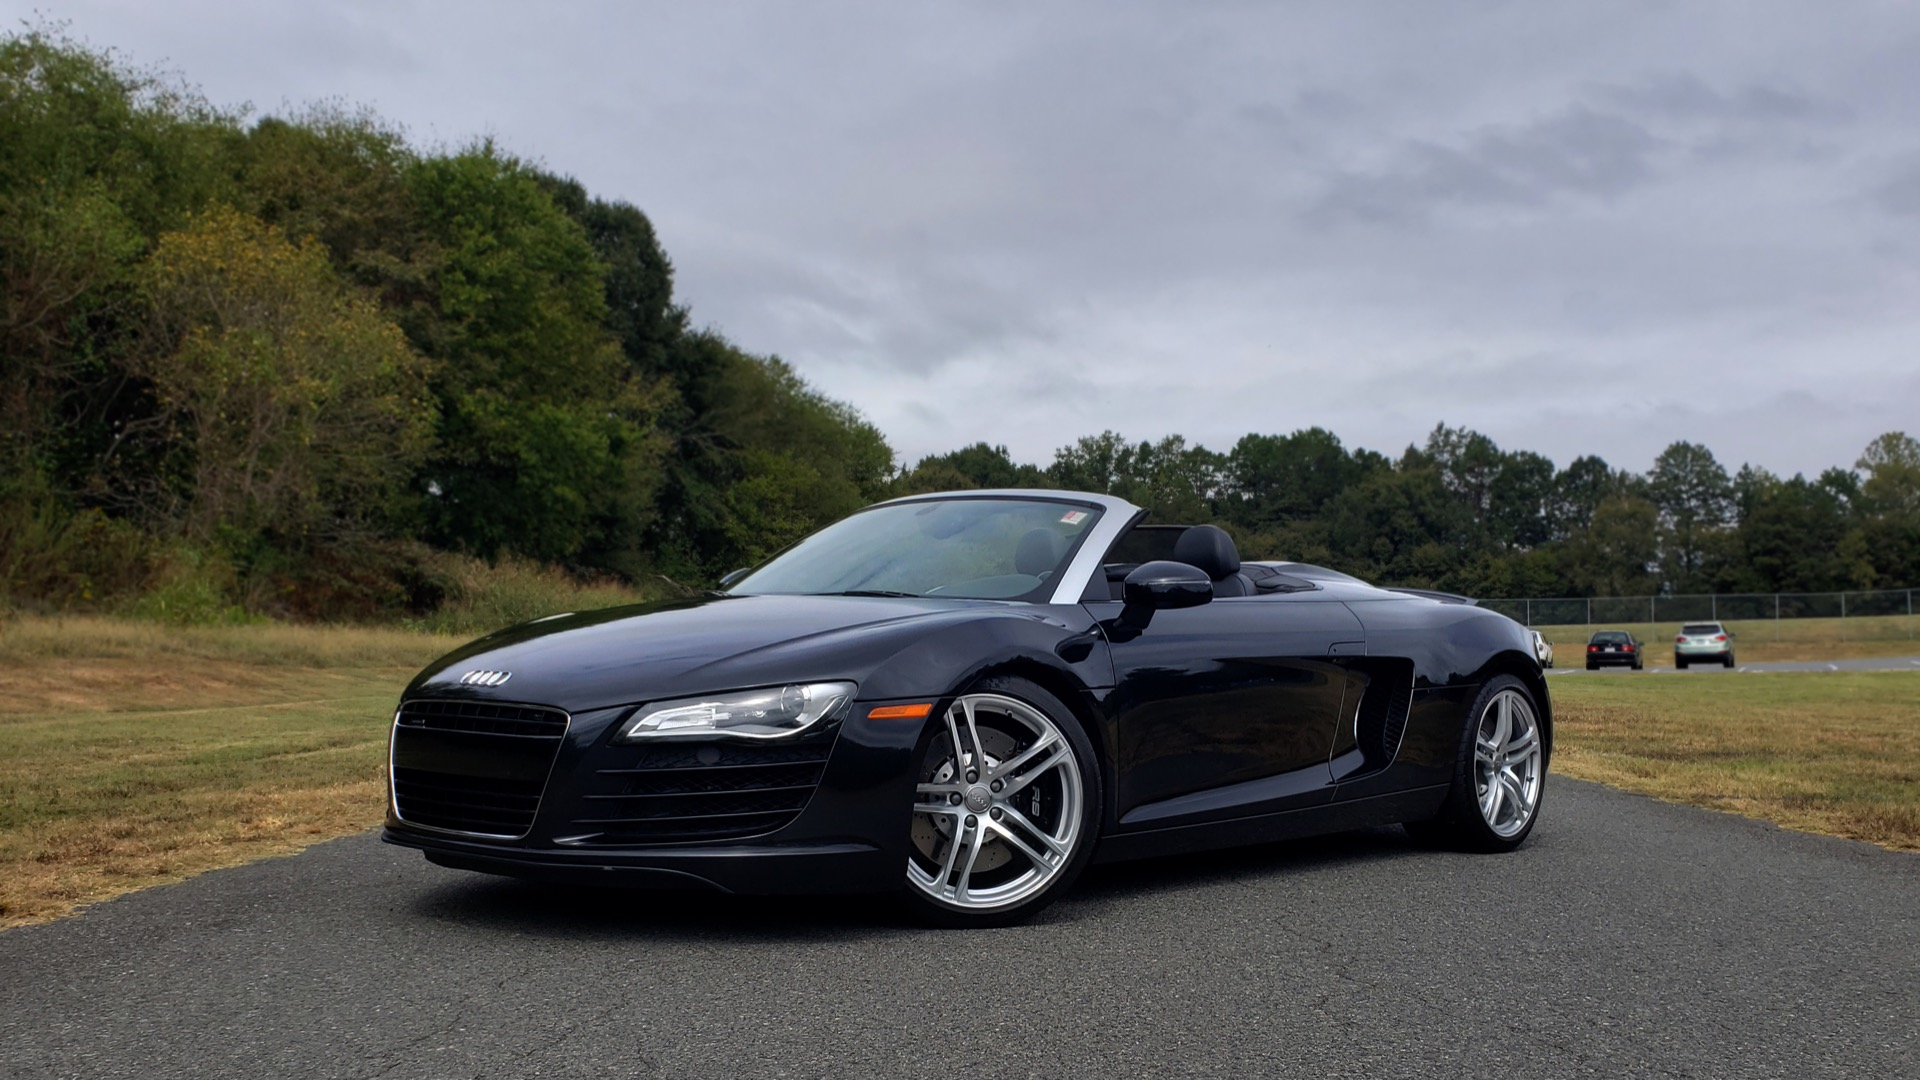 Used 2011 Audi R8 4.2L SPYDER QUATTRO / NAV / 19 IN WHEELS / LOW MILES for sale Sold at Formula Imports in Charlotte NC 28227 2